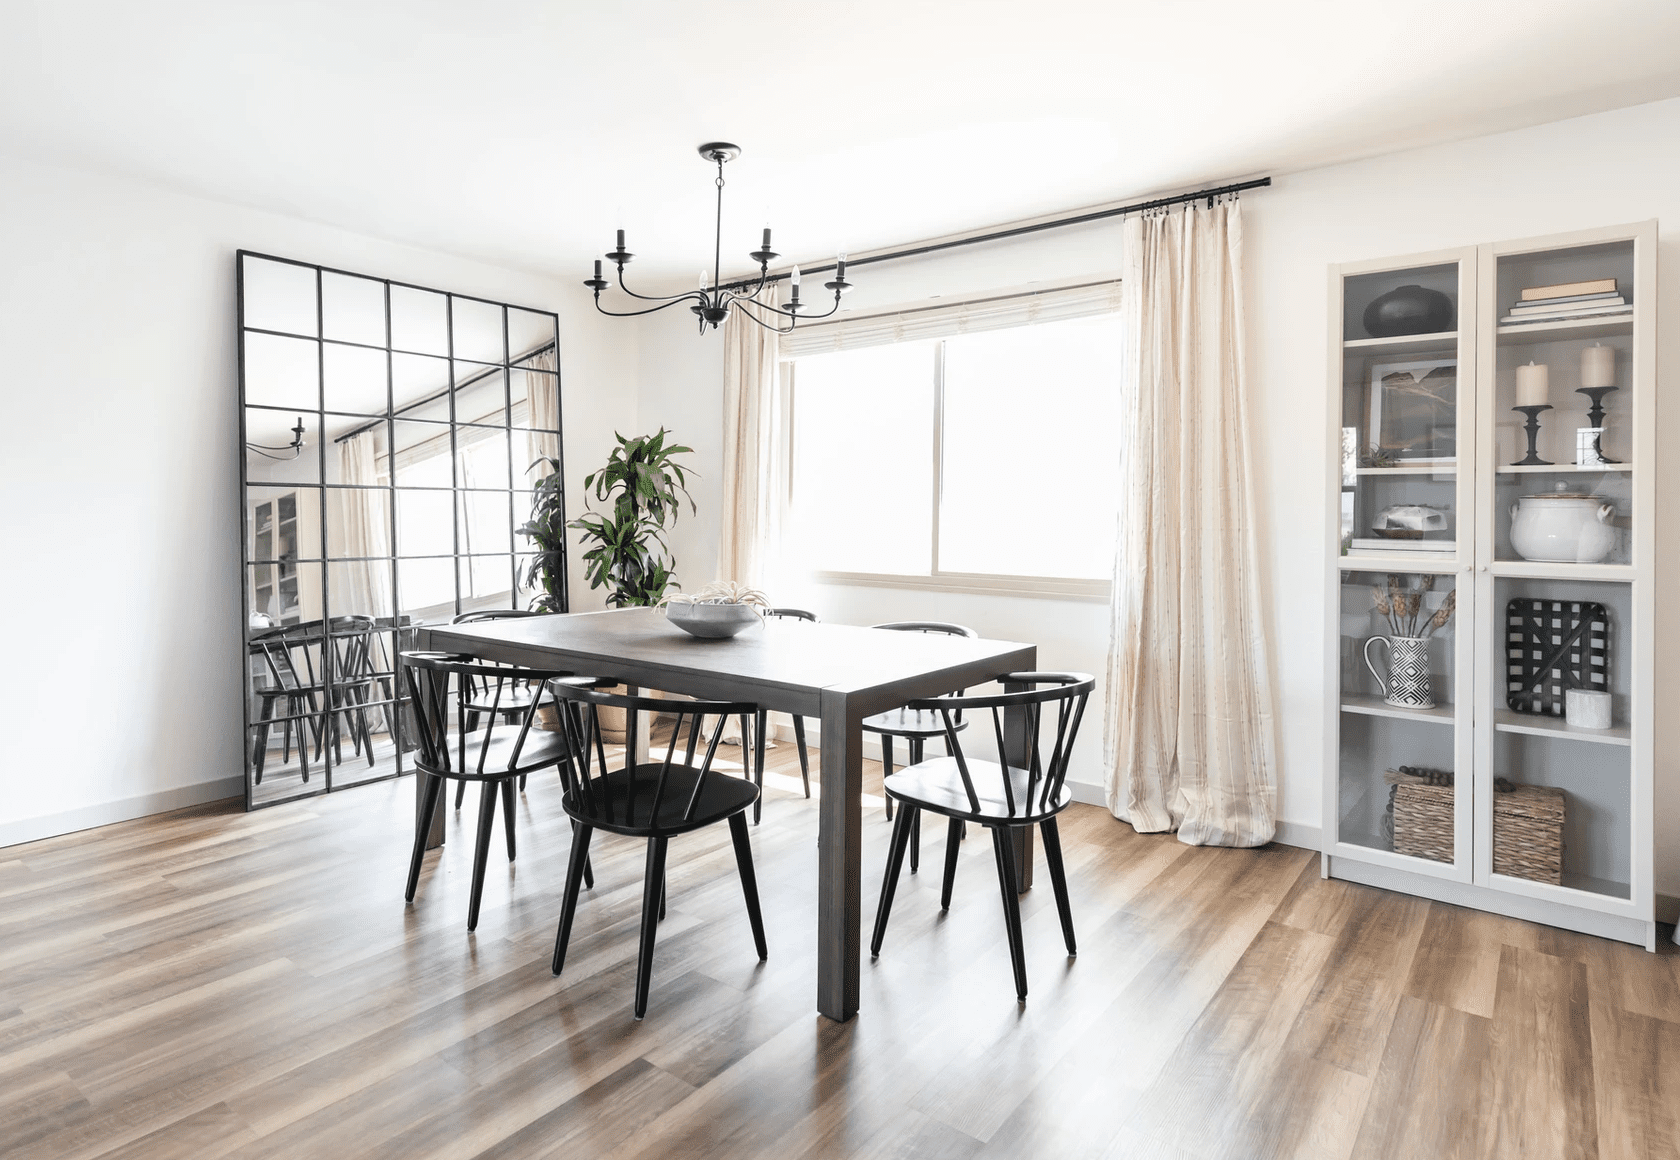 A dining room with a large floor mirror propped up against the wall